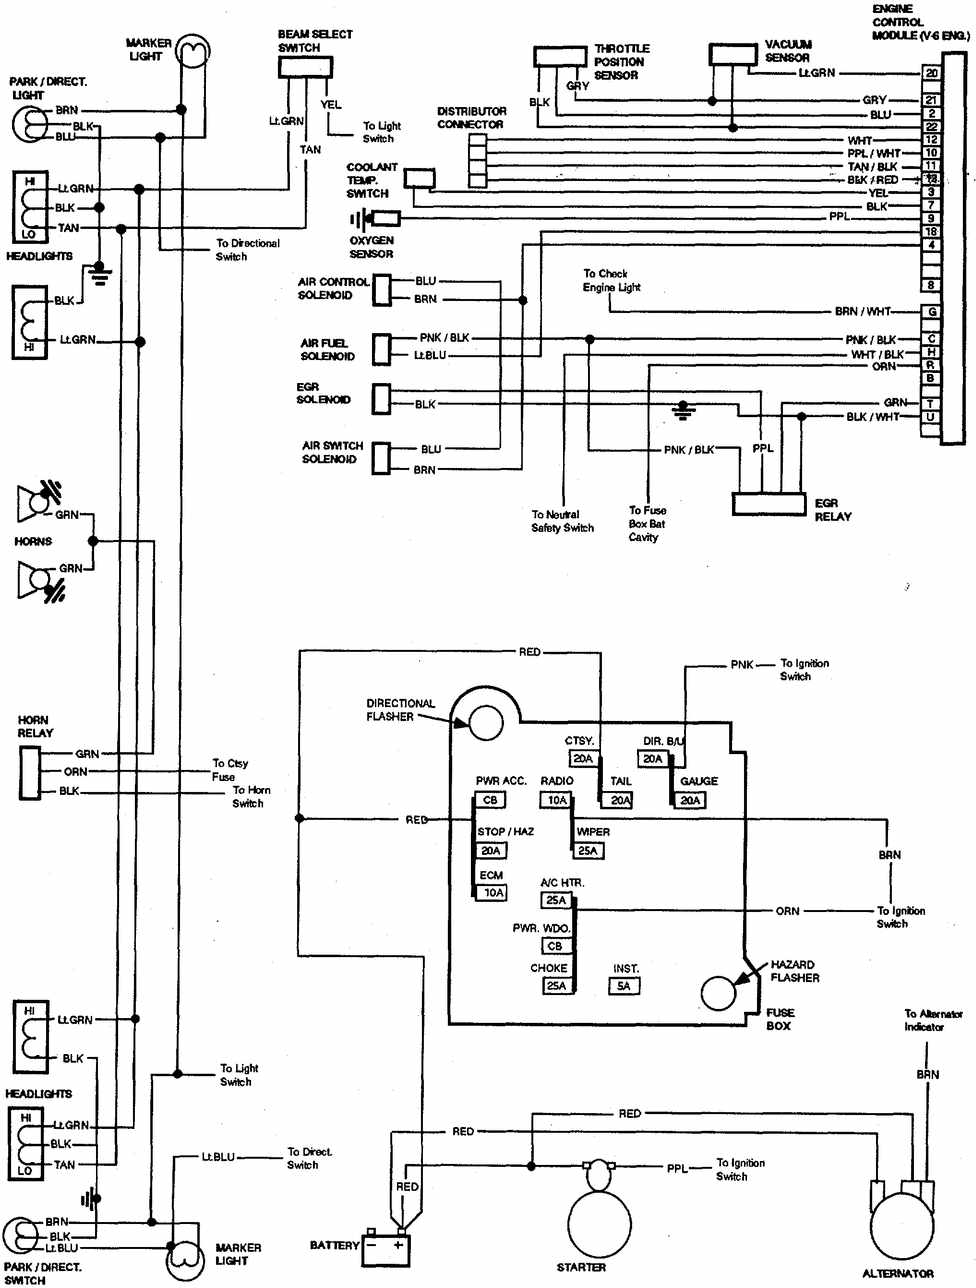 2010 chevy truck radio wire diagram